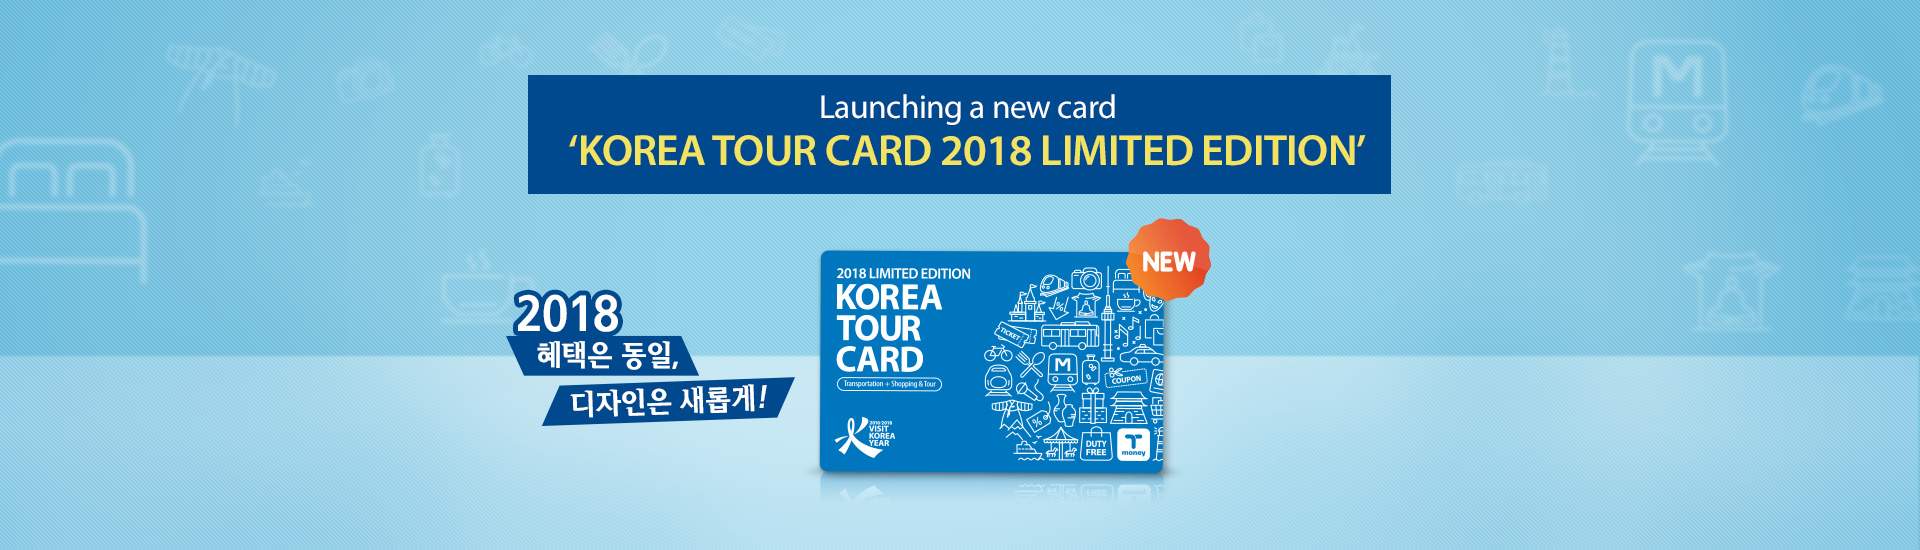 KOREA TOUR CARD 2018 LIMITED EDITION